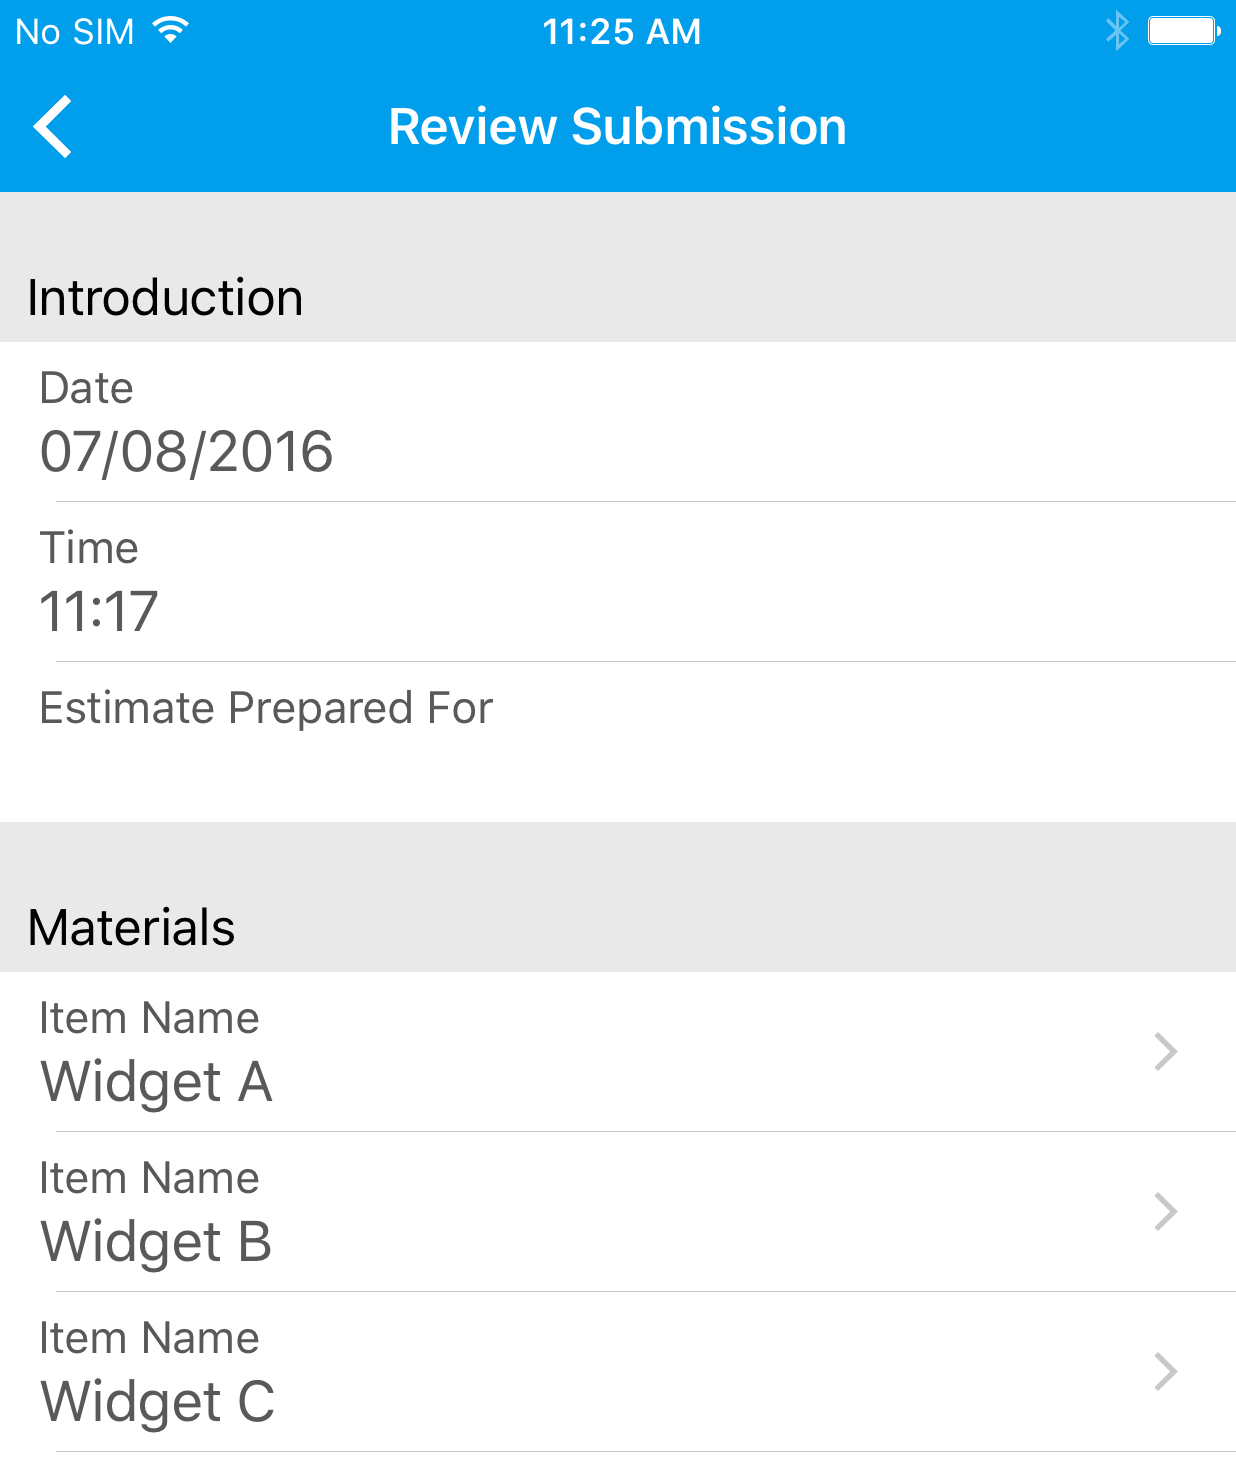 Canvas iOS app review submission screen